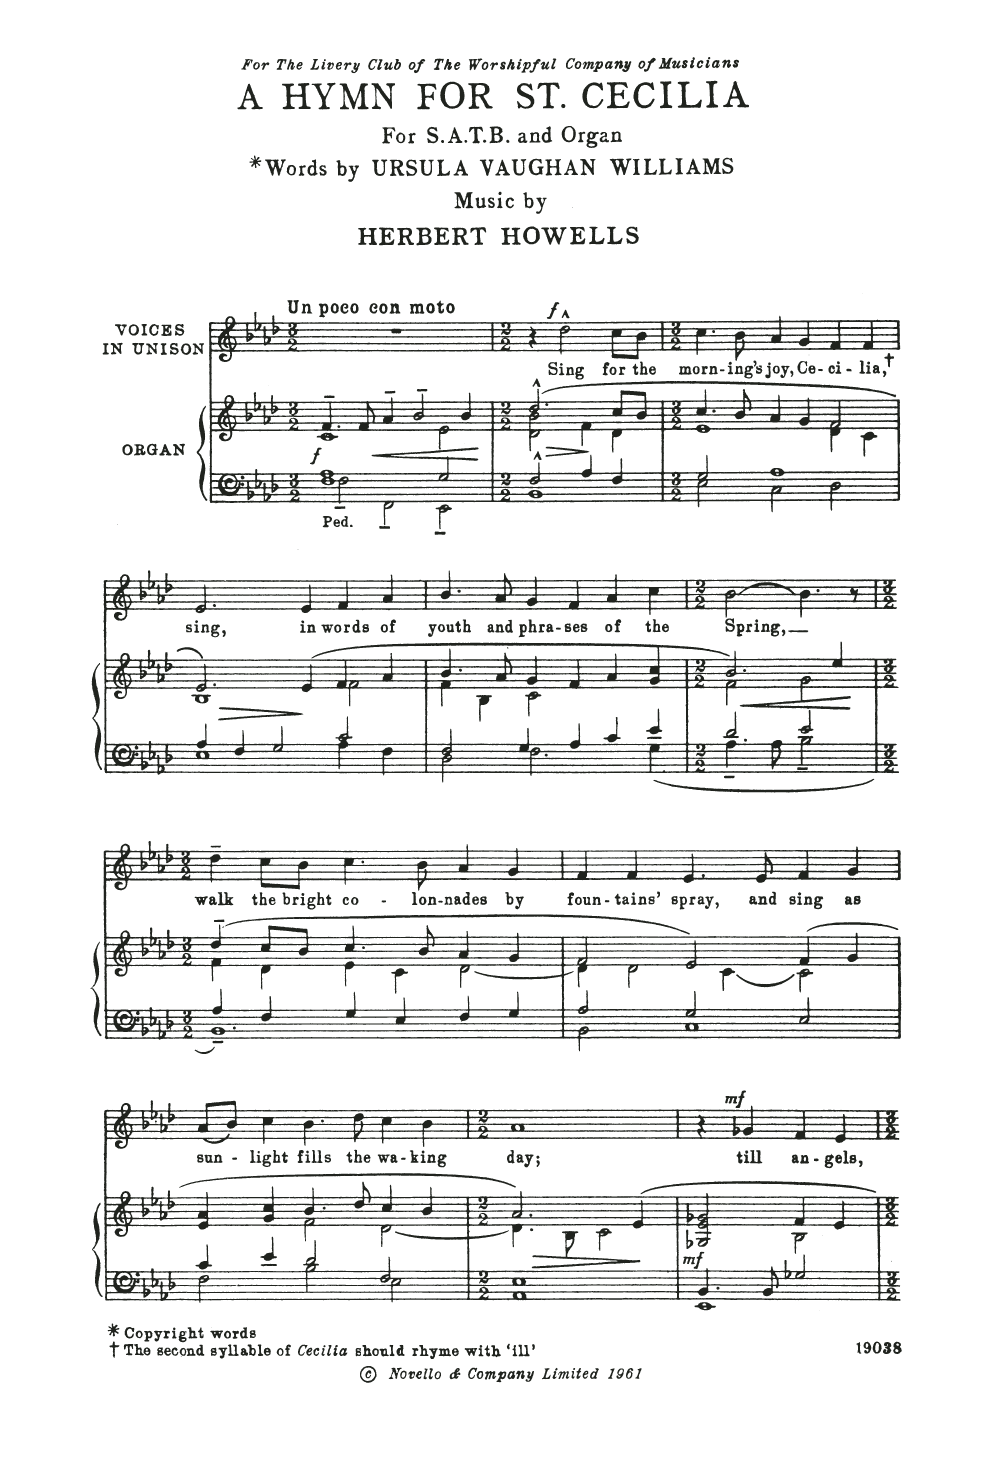 Herbert Howells - A Hymn For St Cecilia